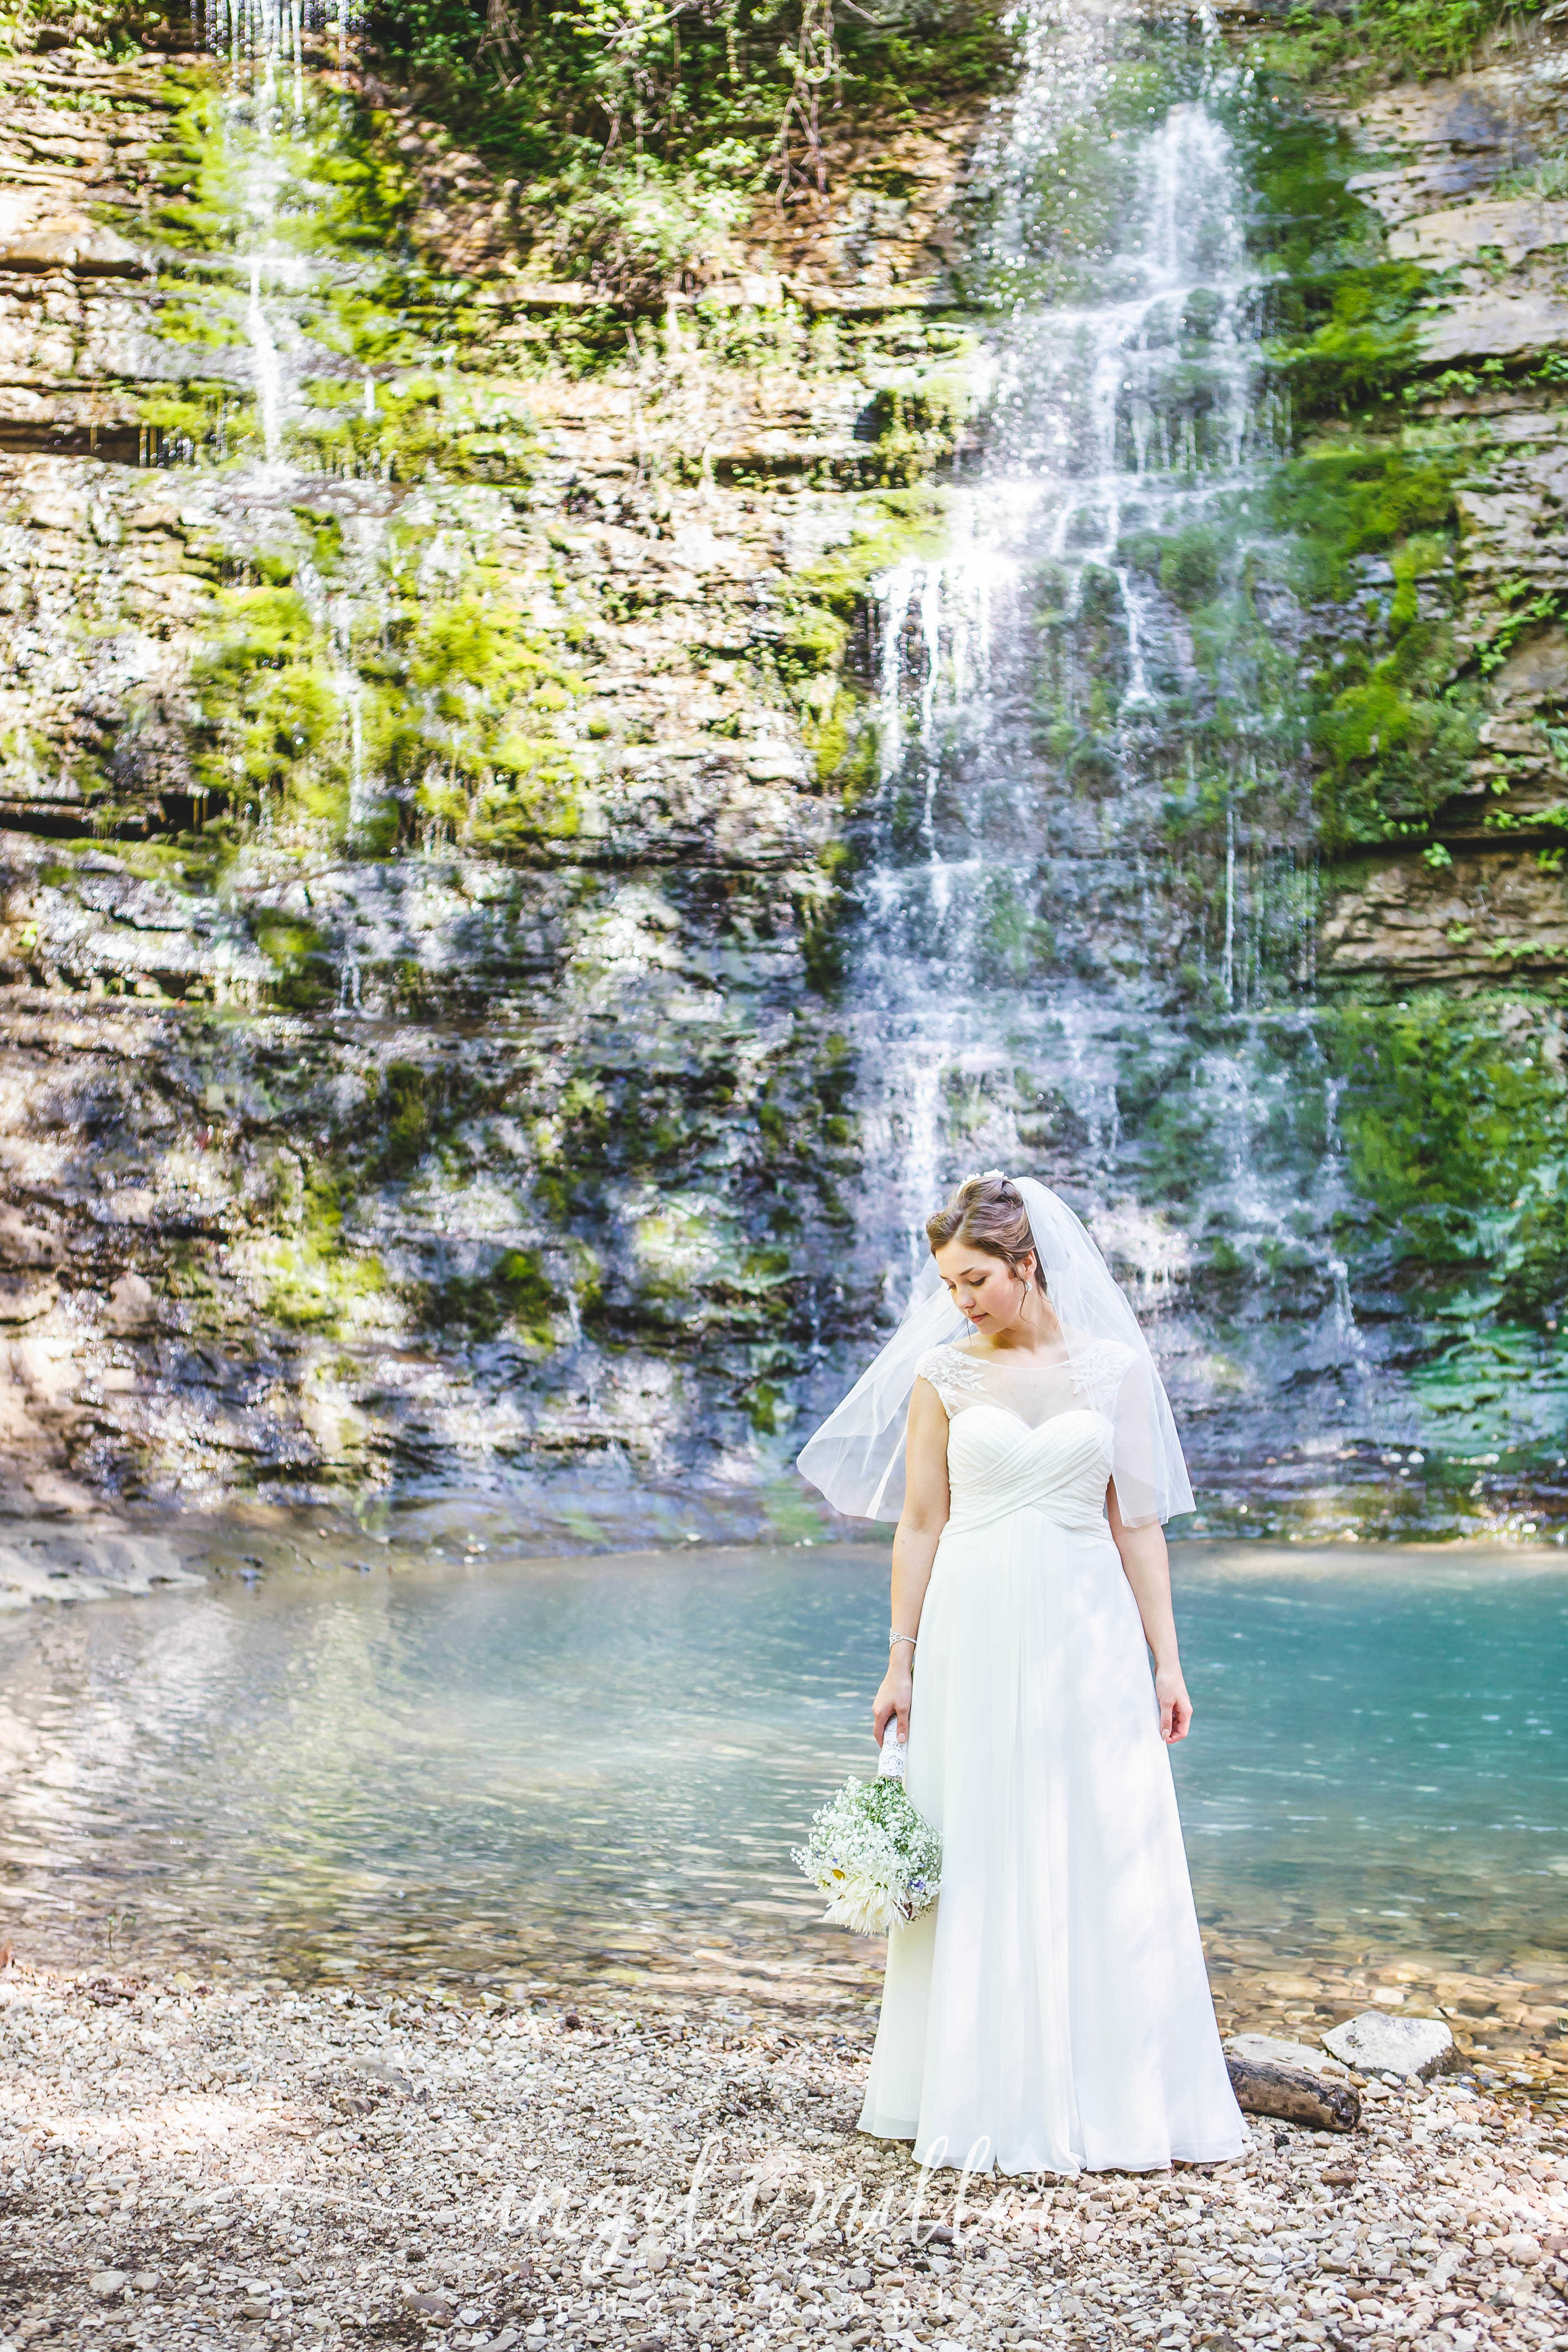 Angela Miller Photography, Buffalo River Wedding